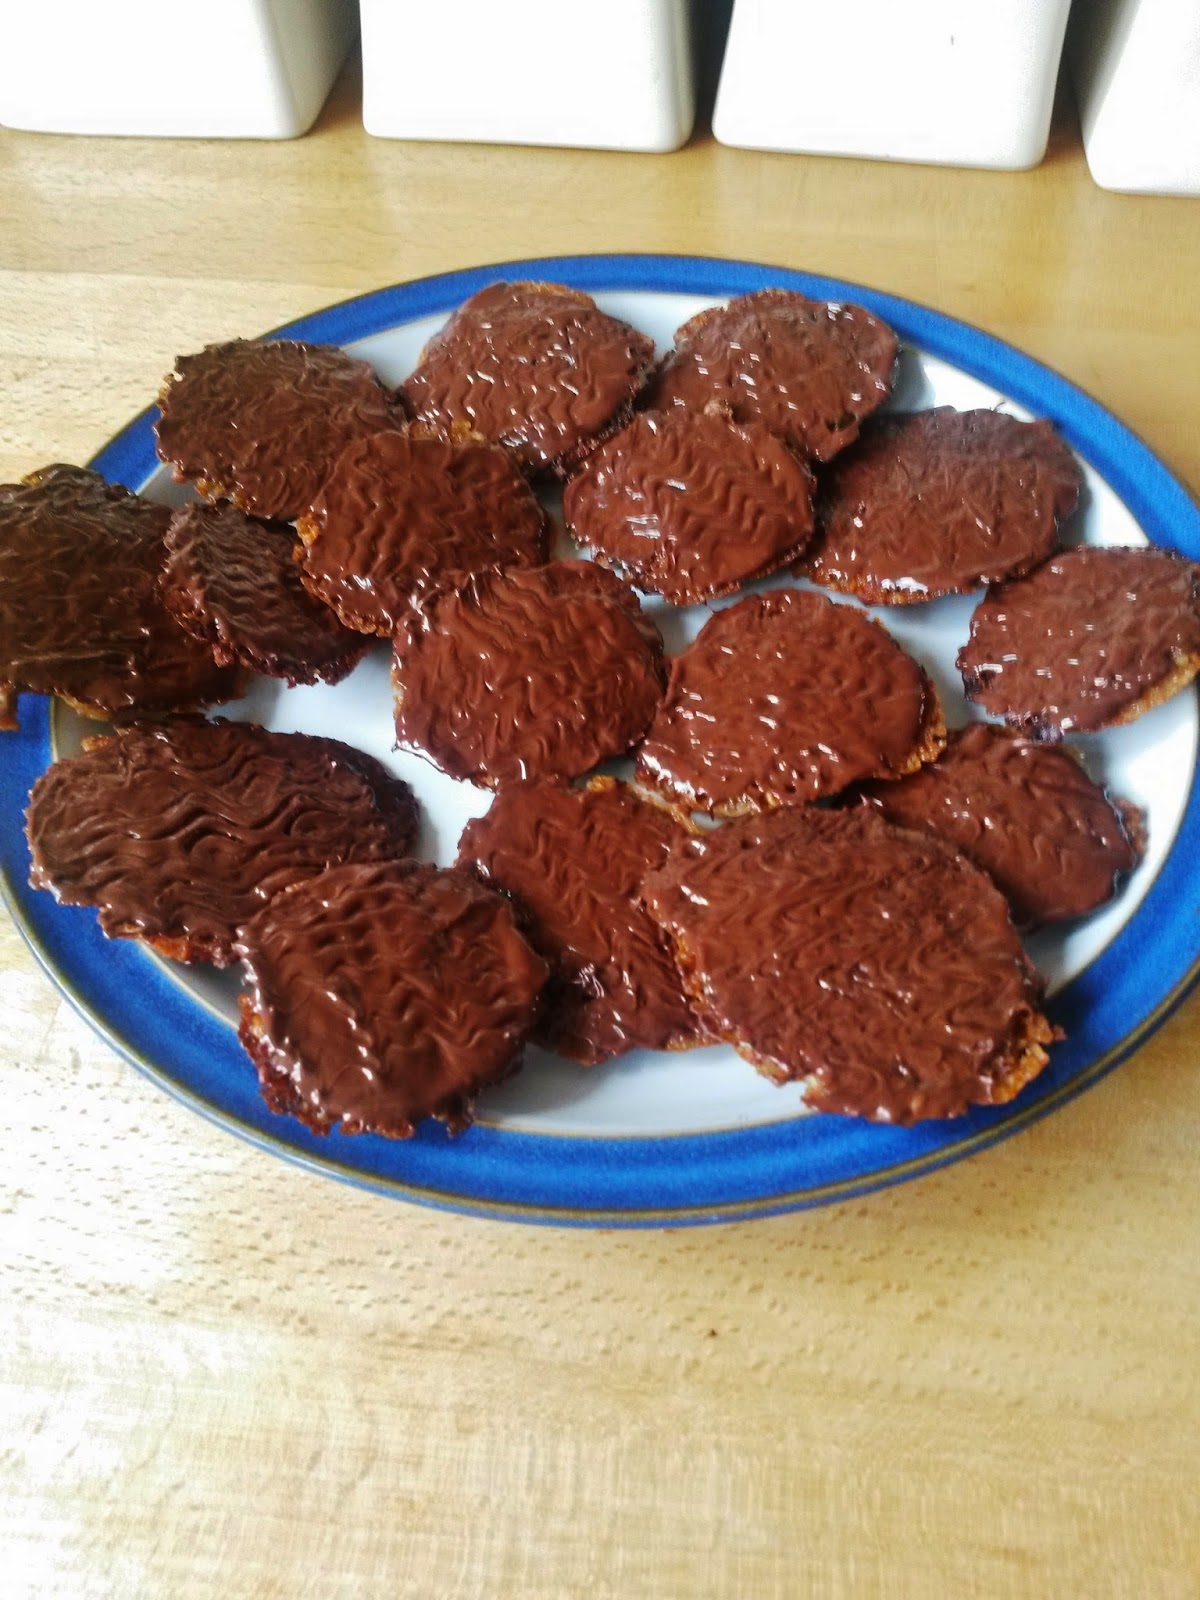 Homemade chocolate florentine biscuits